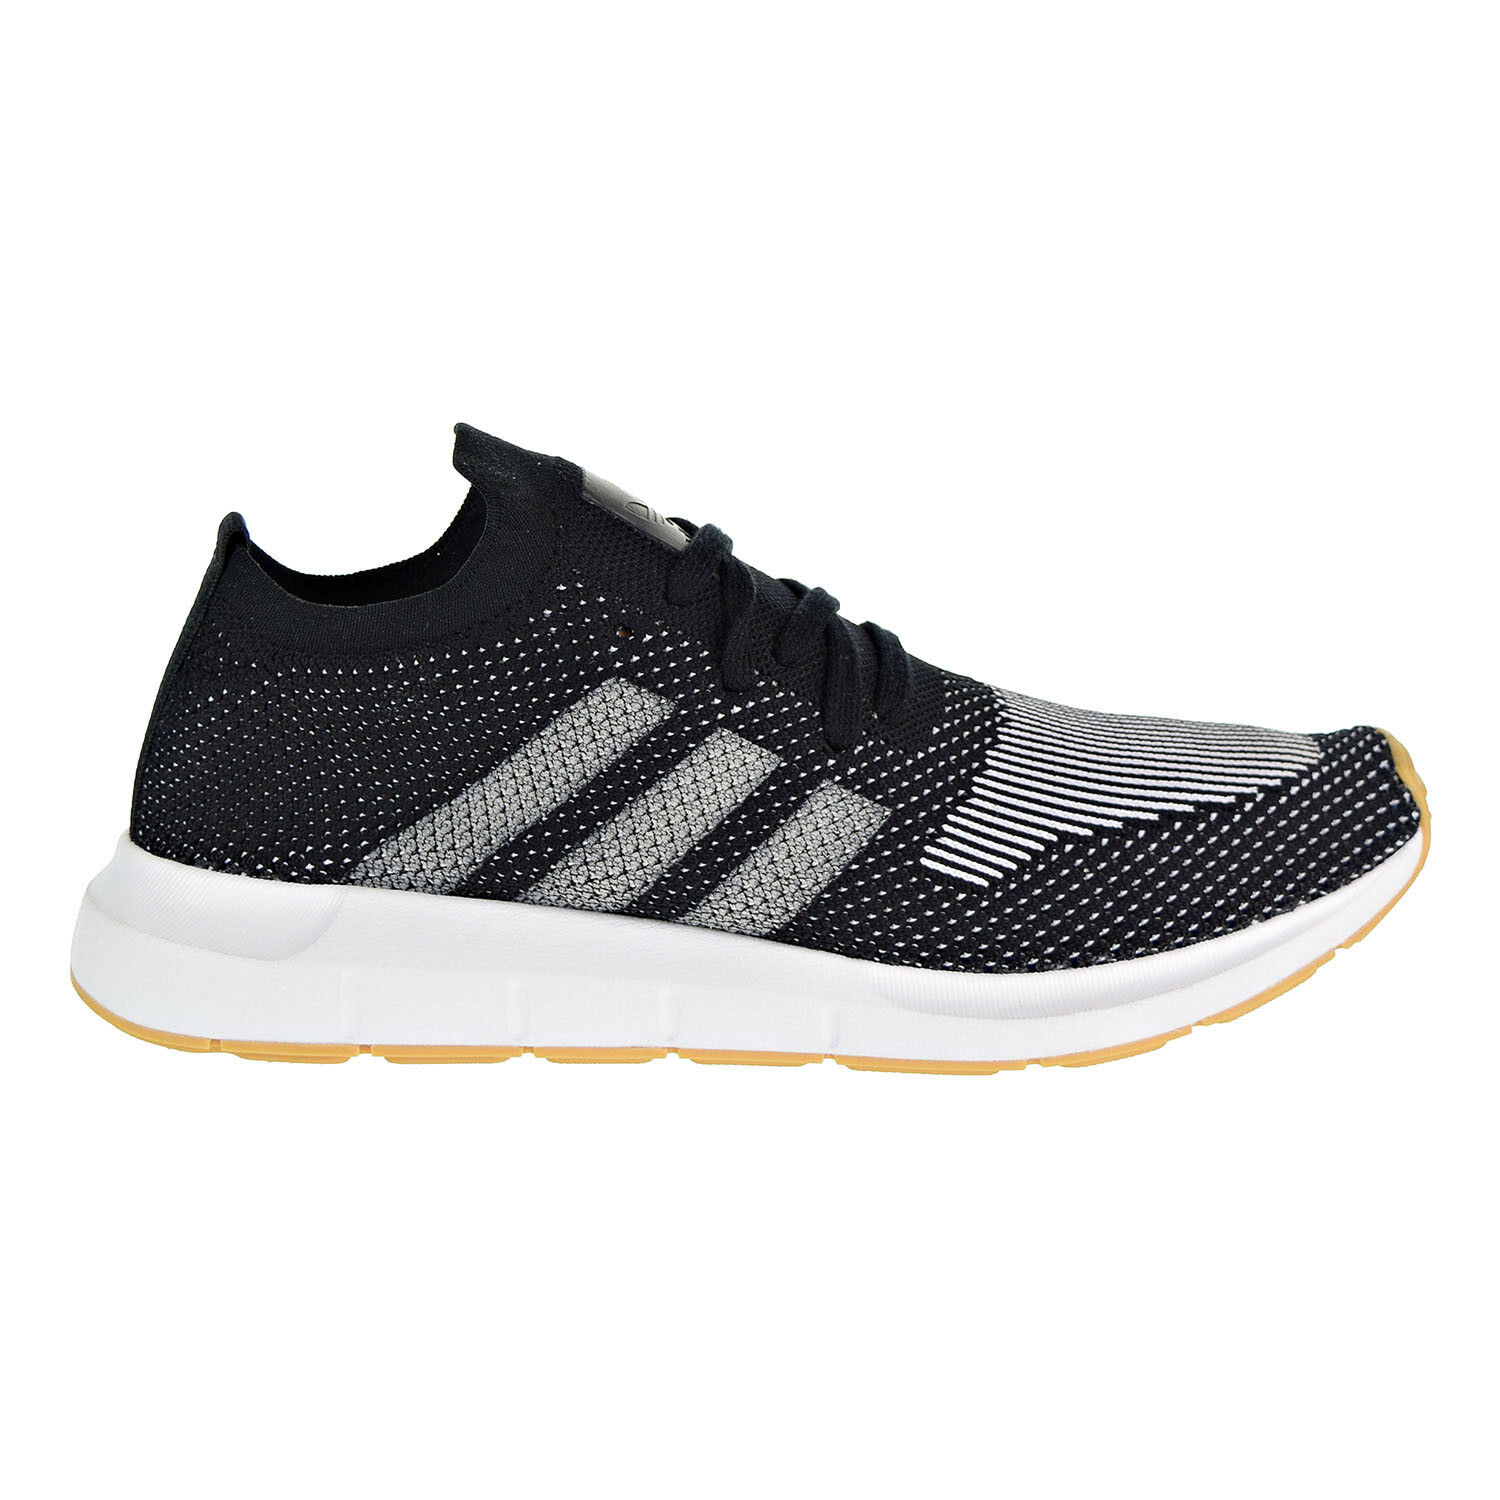 Adidas Originals Swift Run Primeknite Men's Shoes Black/White CQ2891